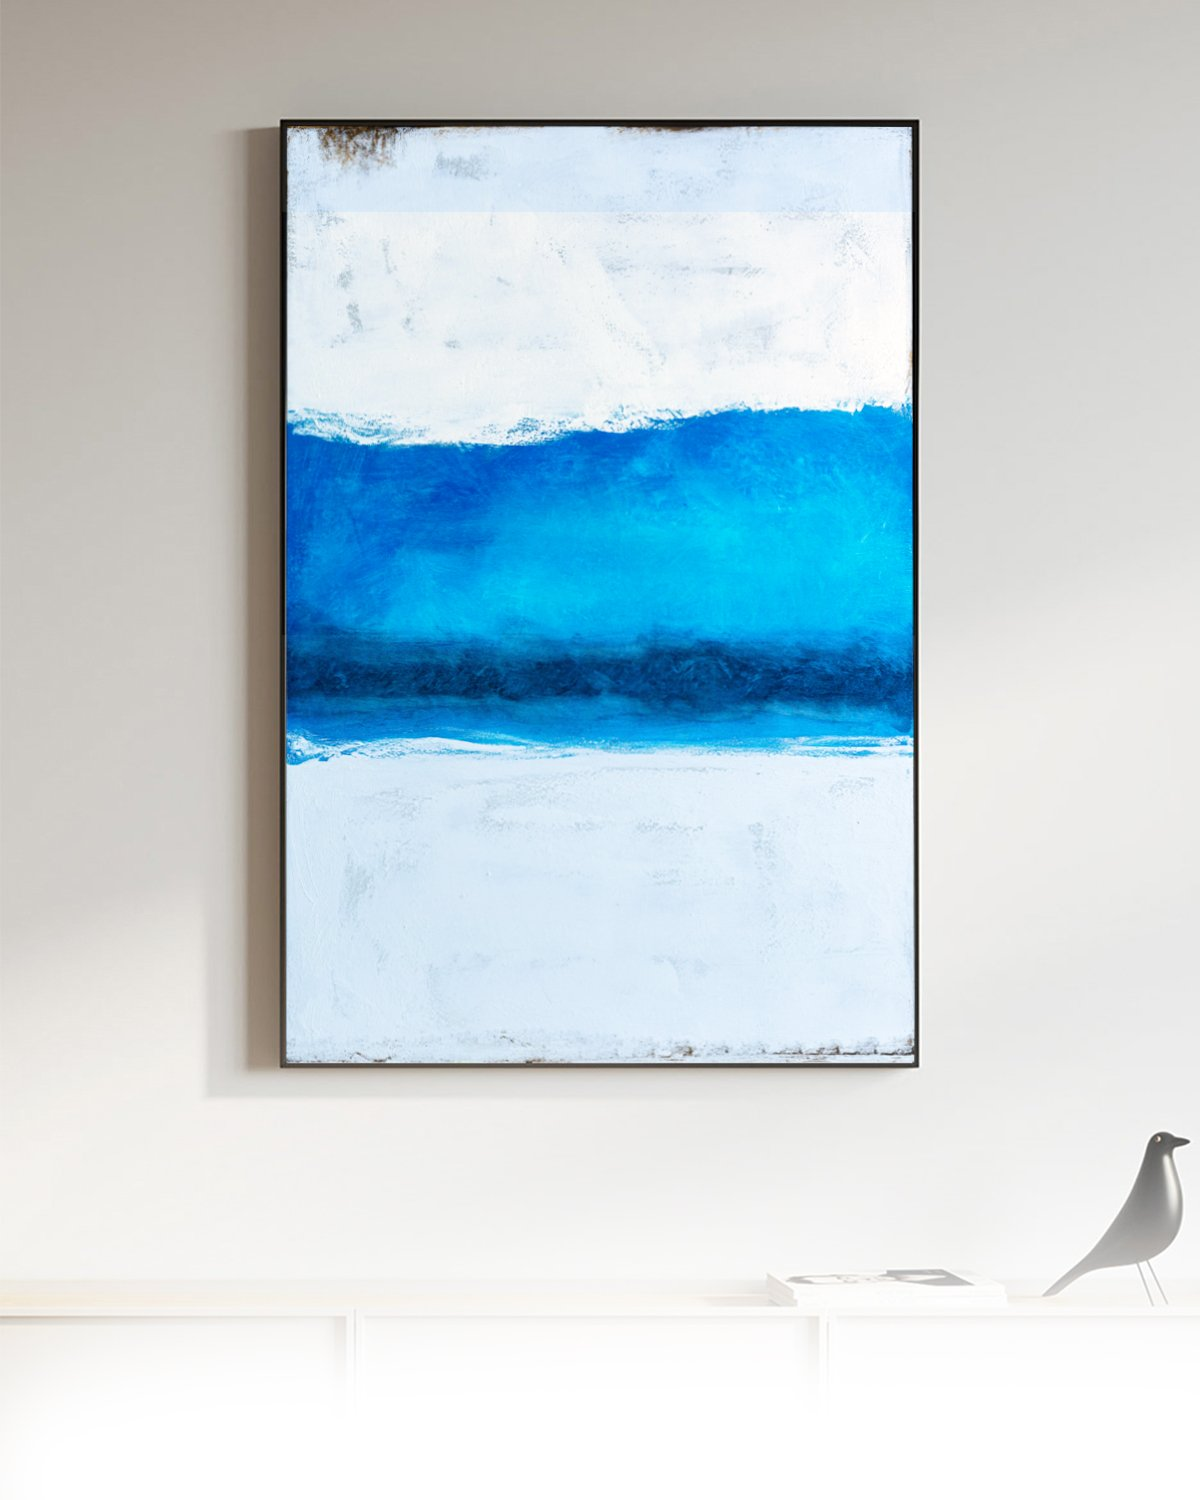 Unique and inspiring modern abstract art prints for home decor and remodeling